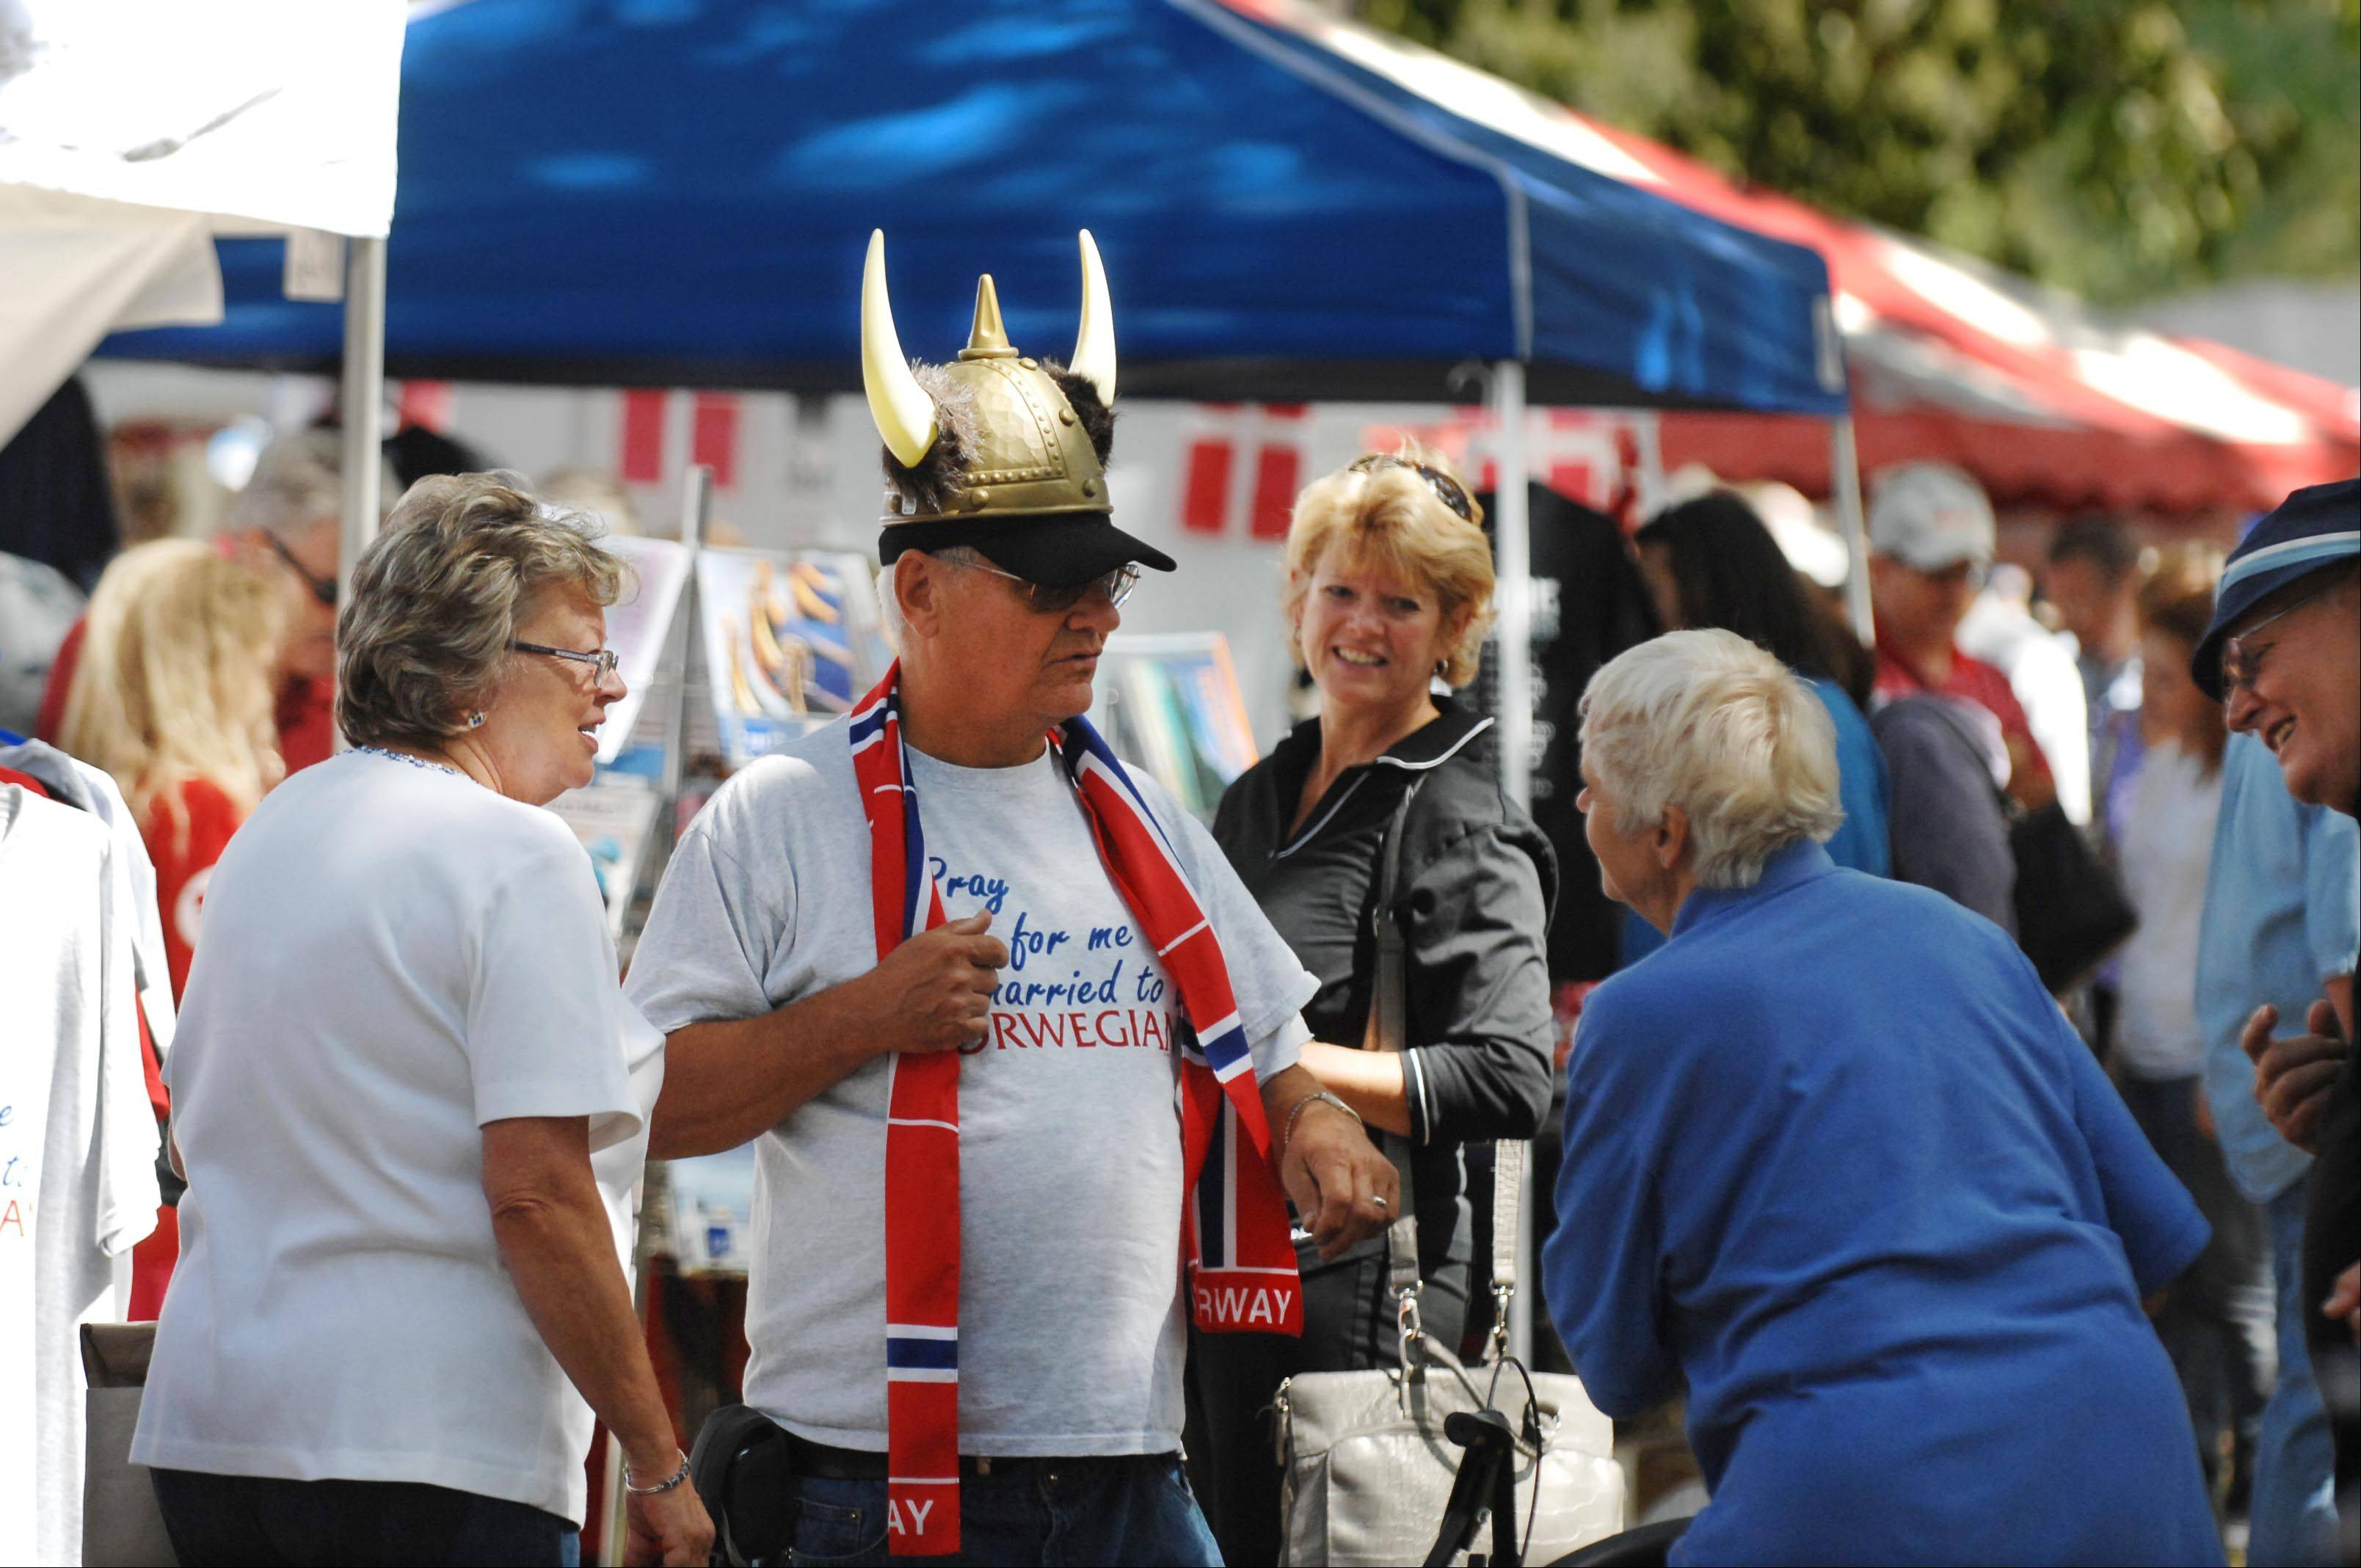 Wearing Viking headgear, Lane Backus shows off his Norwegian scarf to visitors of his retail booth, Lena & Ole's Gifts, Sunday at the 33rd Annual Scandinavian Day Festival at Vasa Park in South Elgin. He and his wife are from Wisconsin and she is Norwegian.